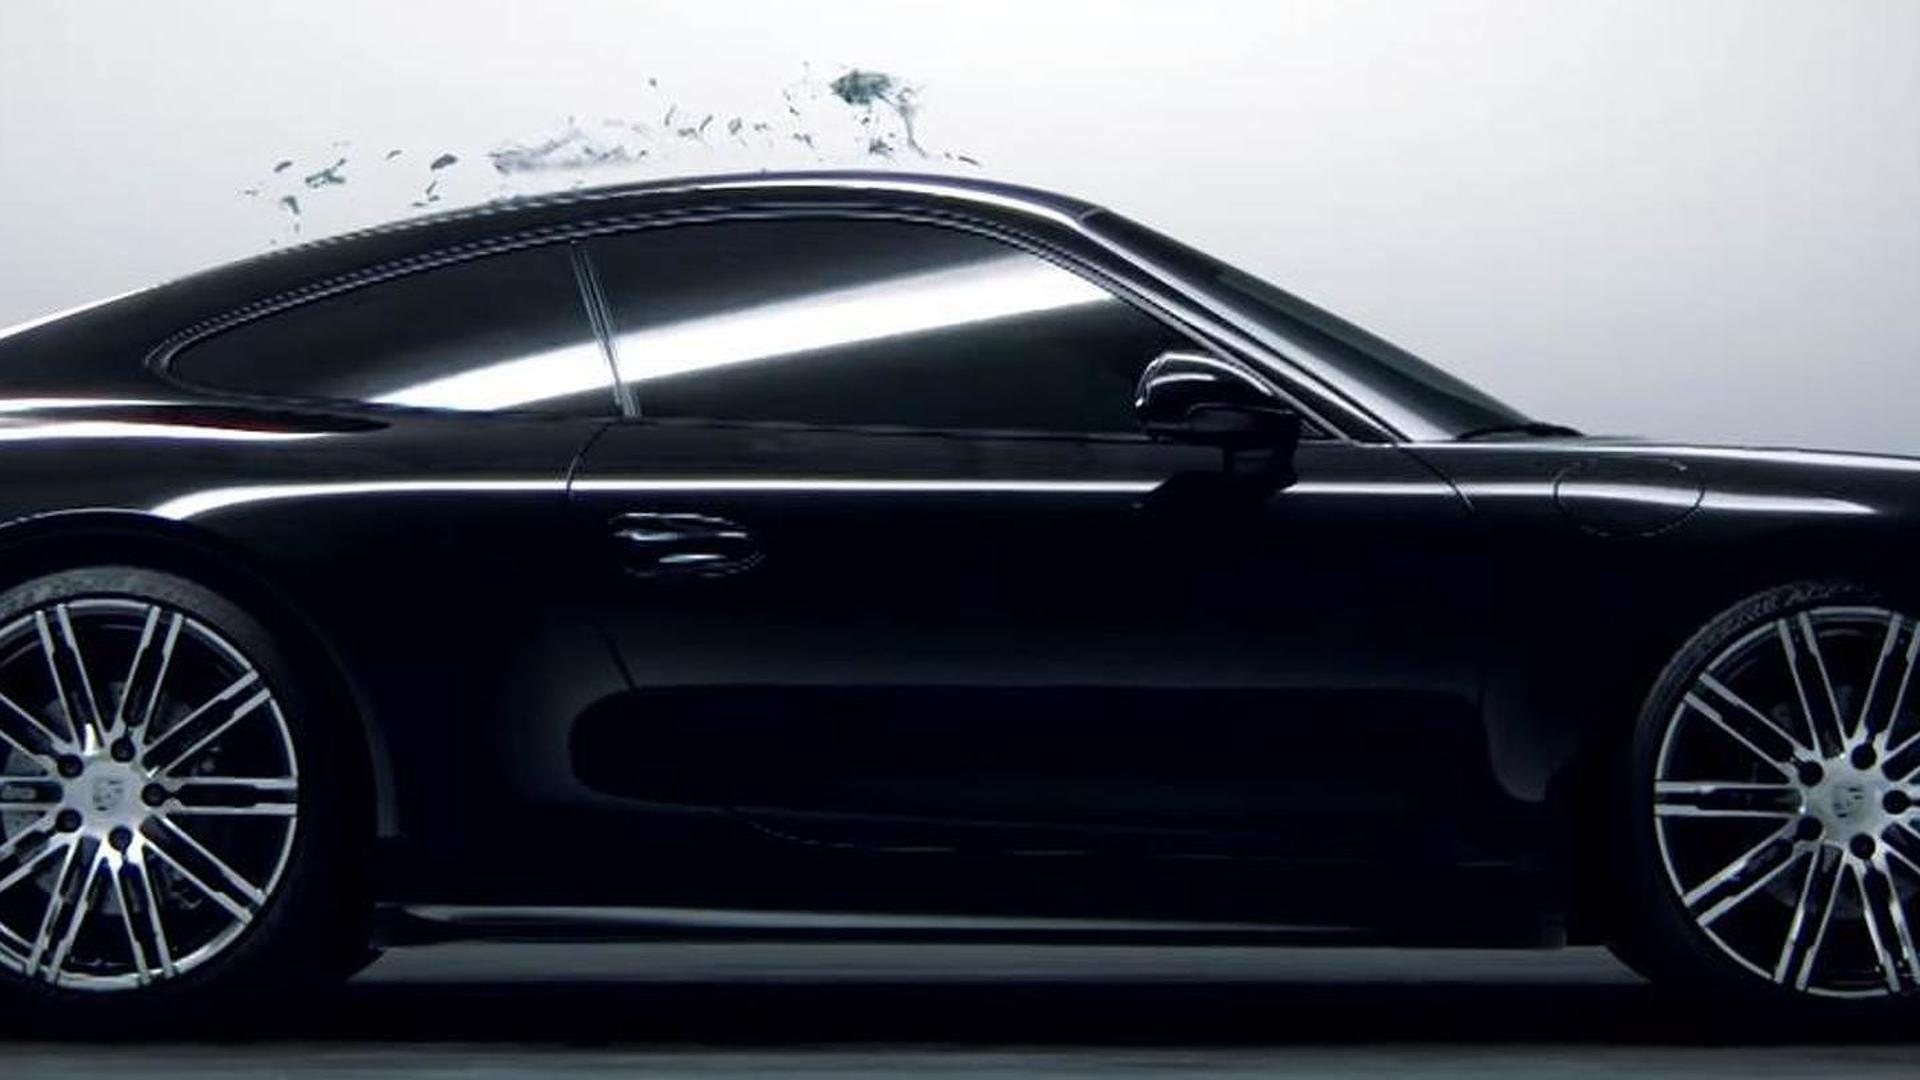 porsche 911 black edition comes to life from black ink in latest promo video product 2015 07 27 162855 - Porsche 911 2015 Black